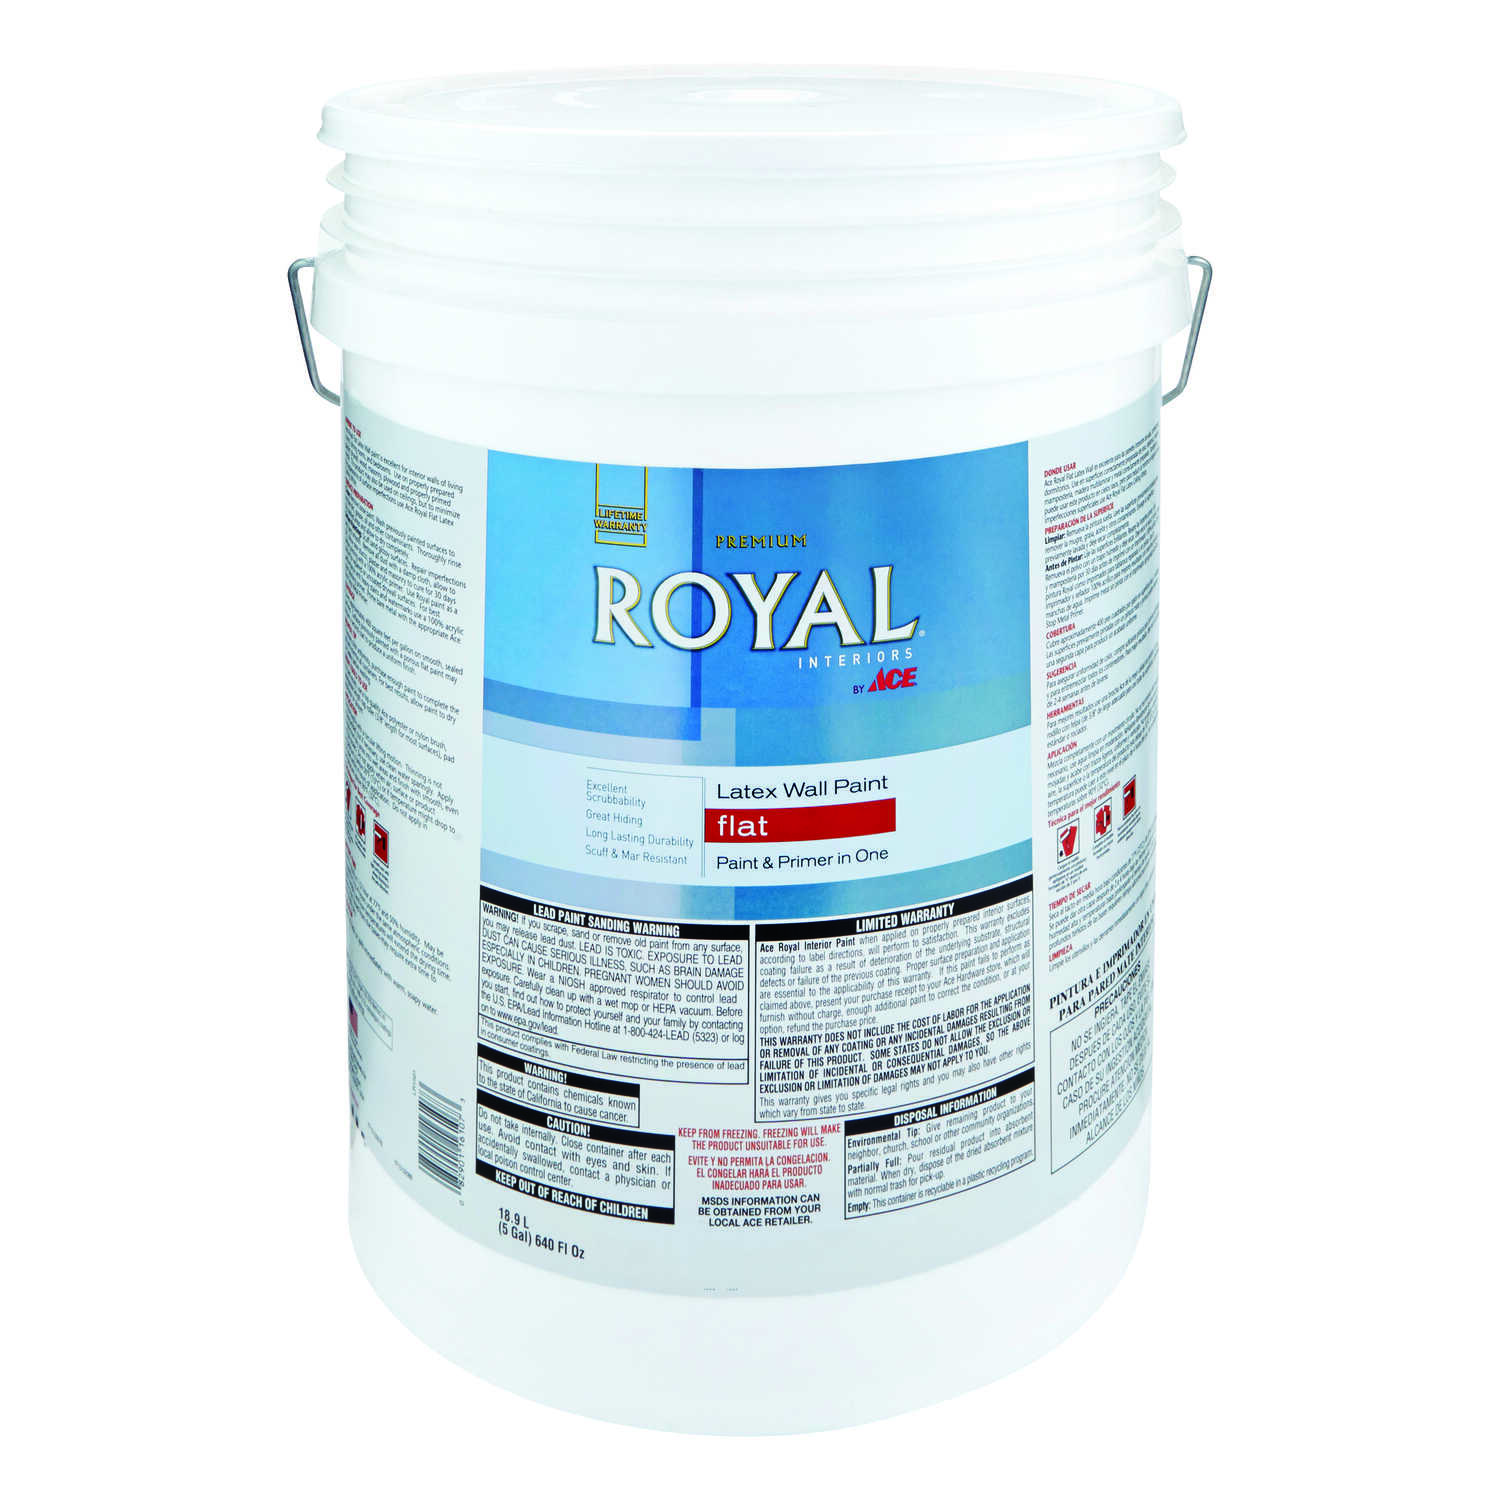 Ace  Royal  Flat  Mid-Tone High-hide  Paint  5 gal. Vinyl Acetate/Ethylene